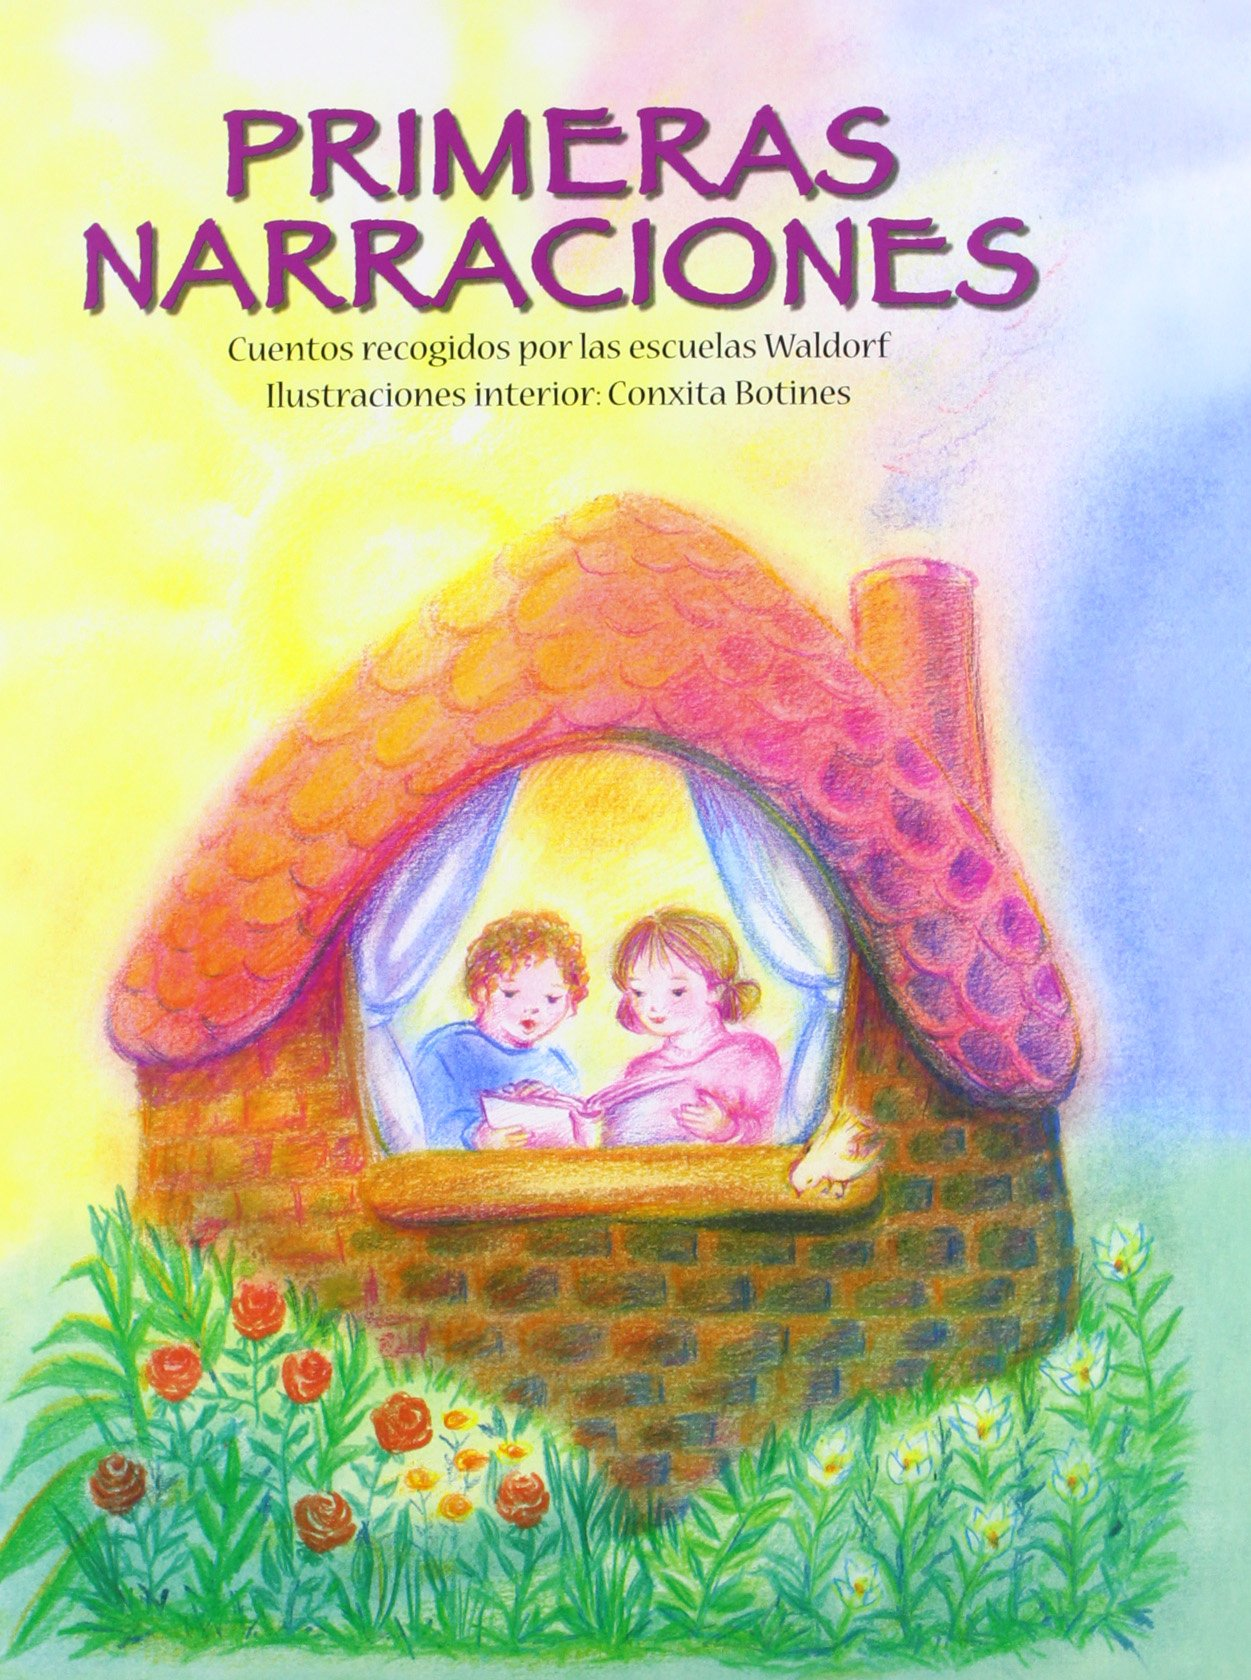 Primeras Narraciones (Spanish) Hardcover – November 16, 2012